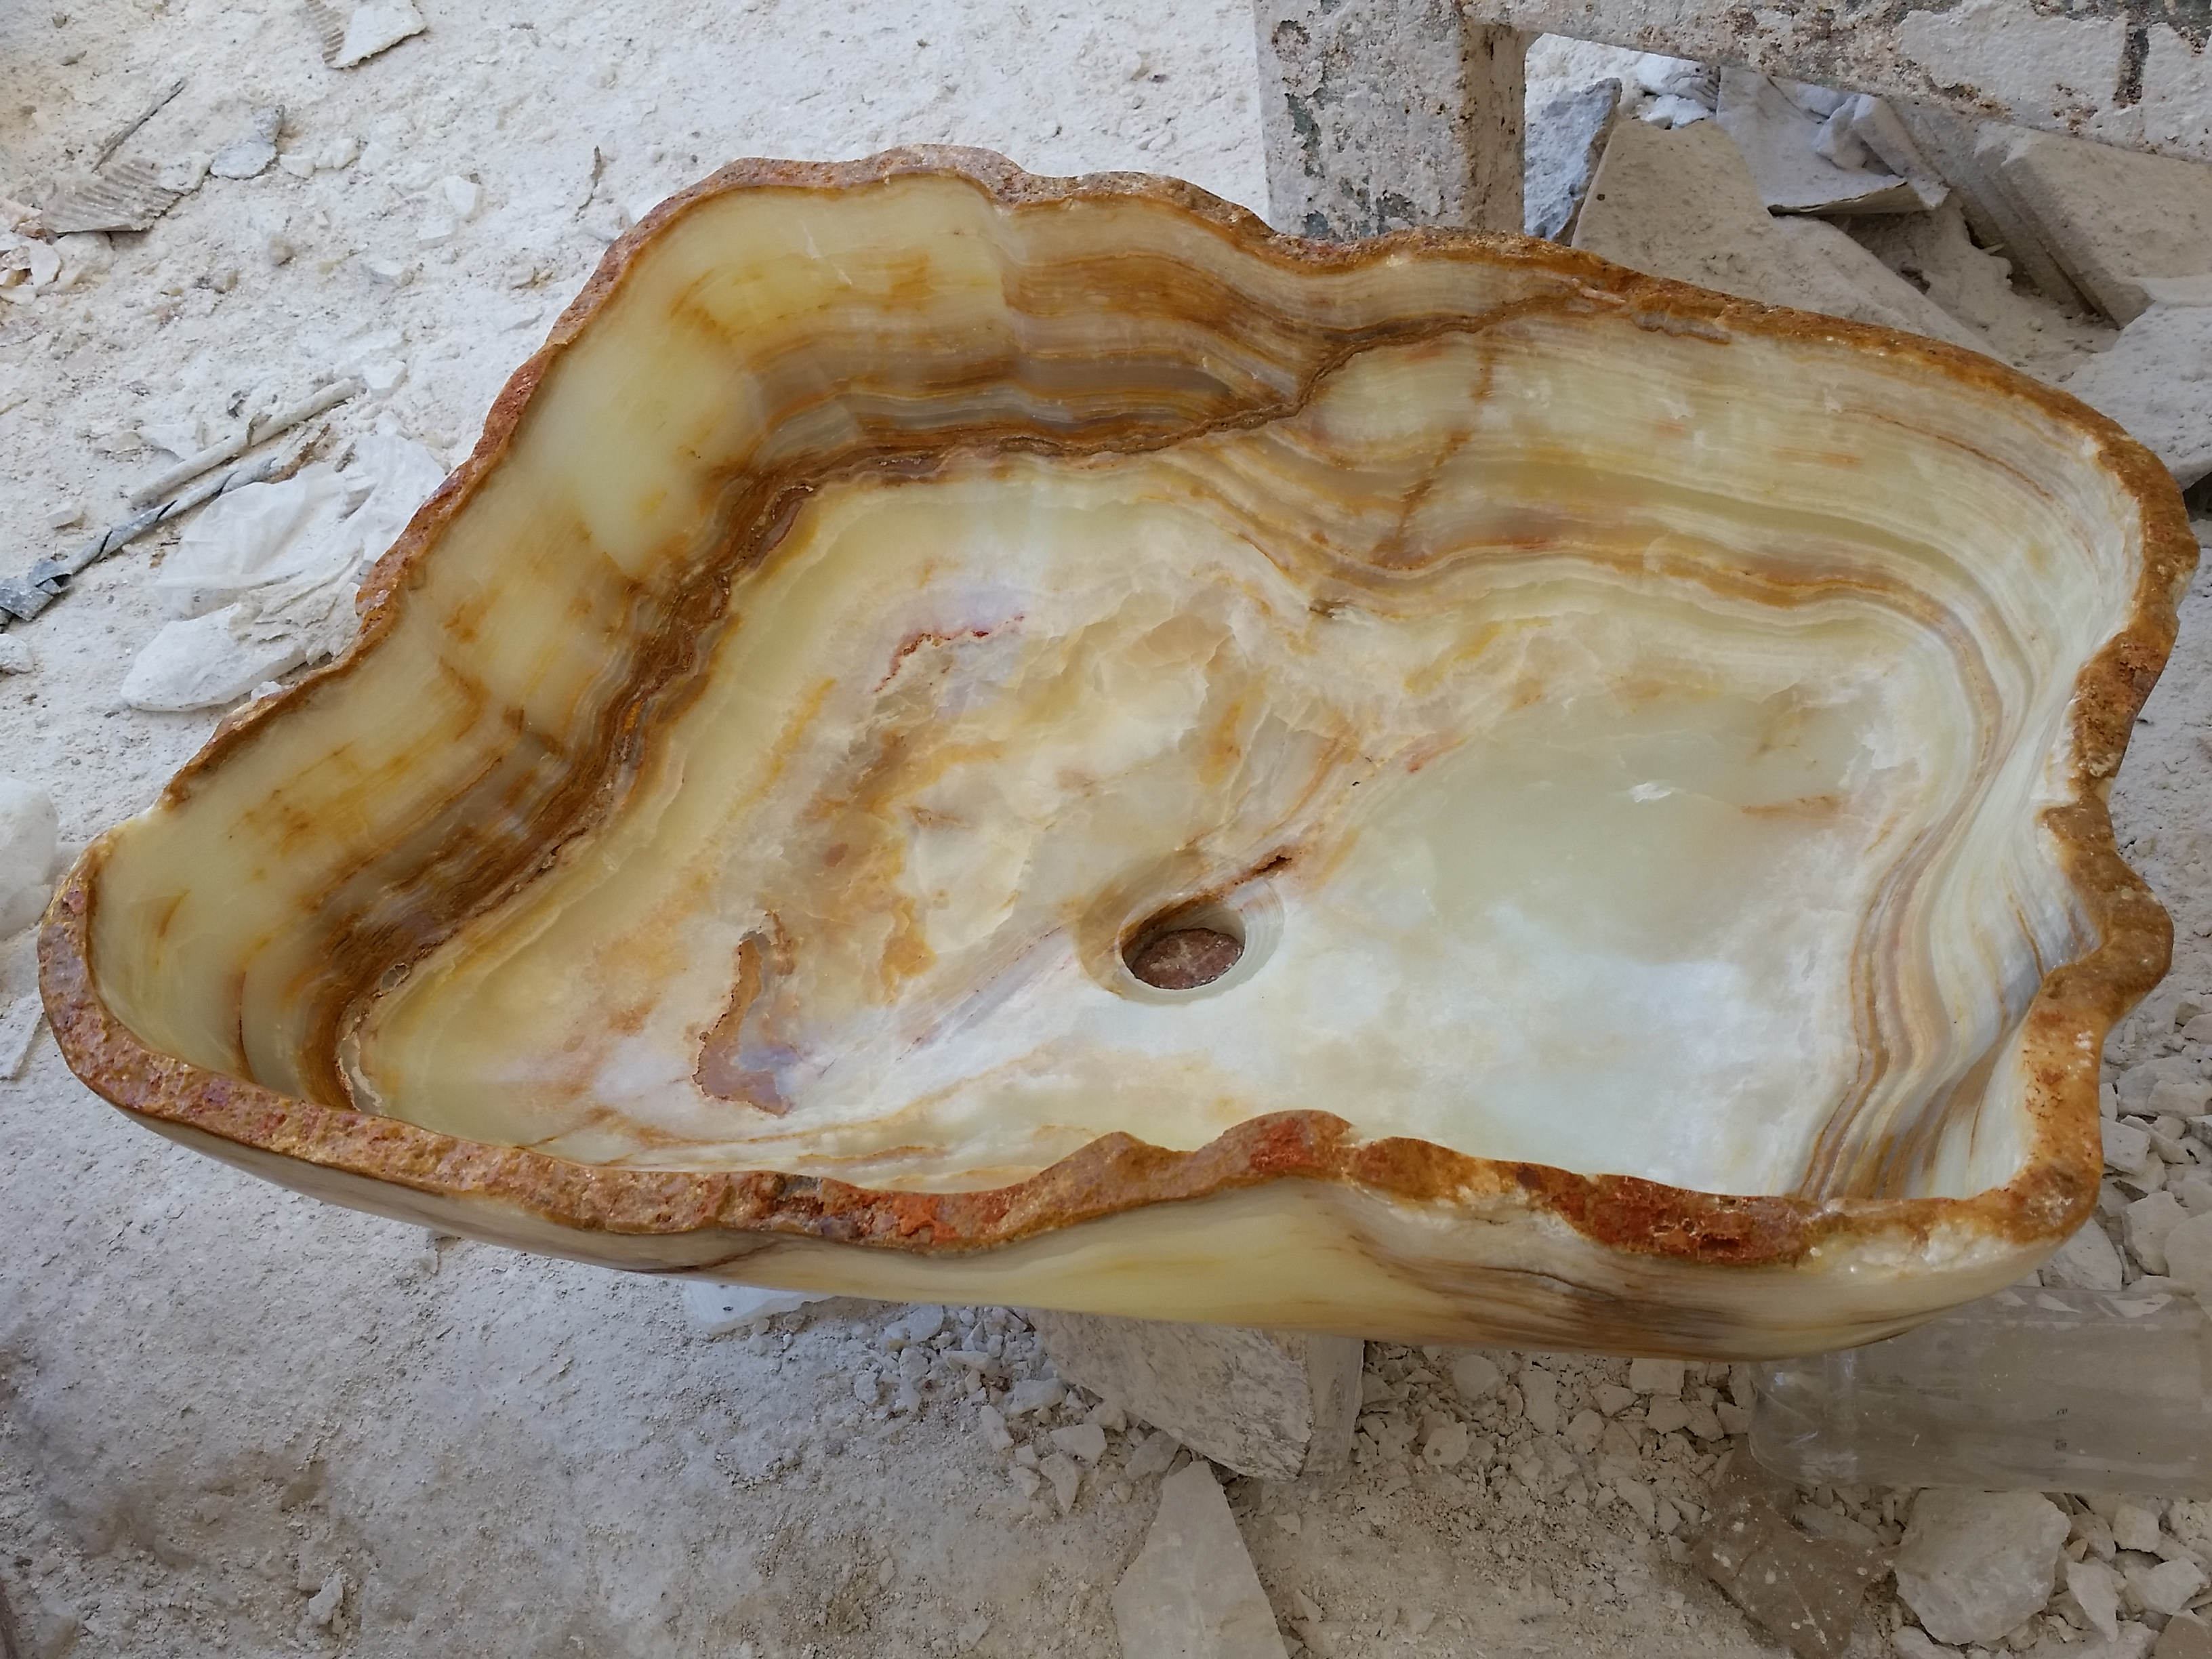 Onyx Stone Sink with irregular Shape